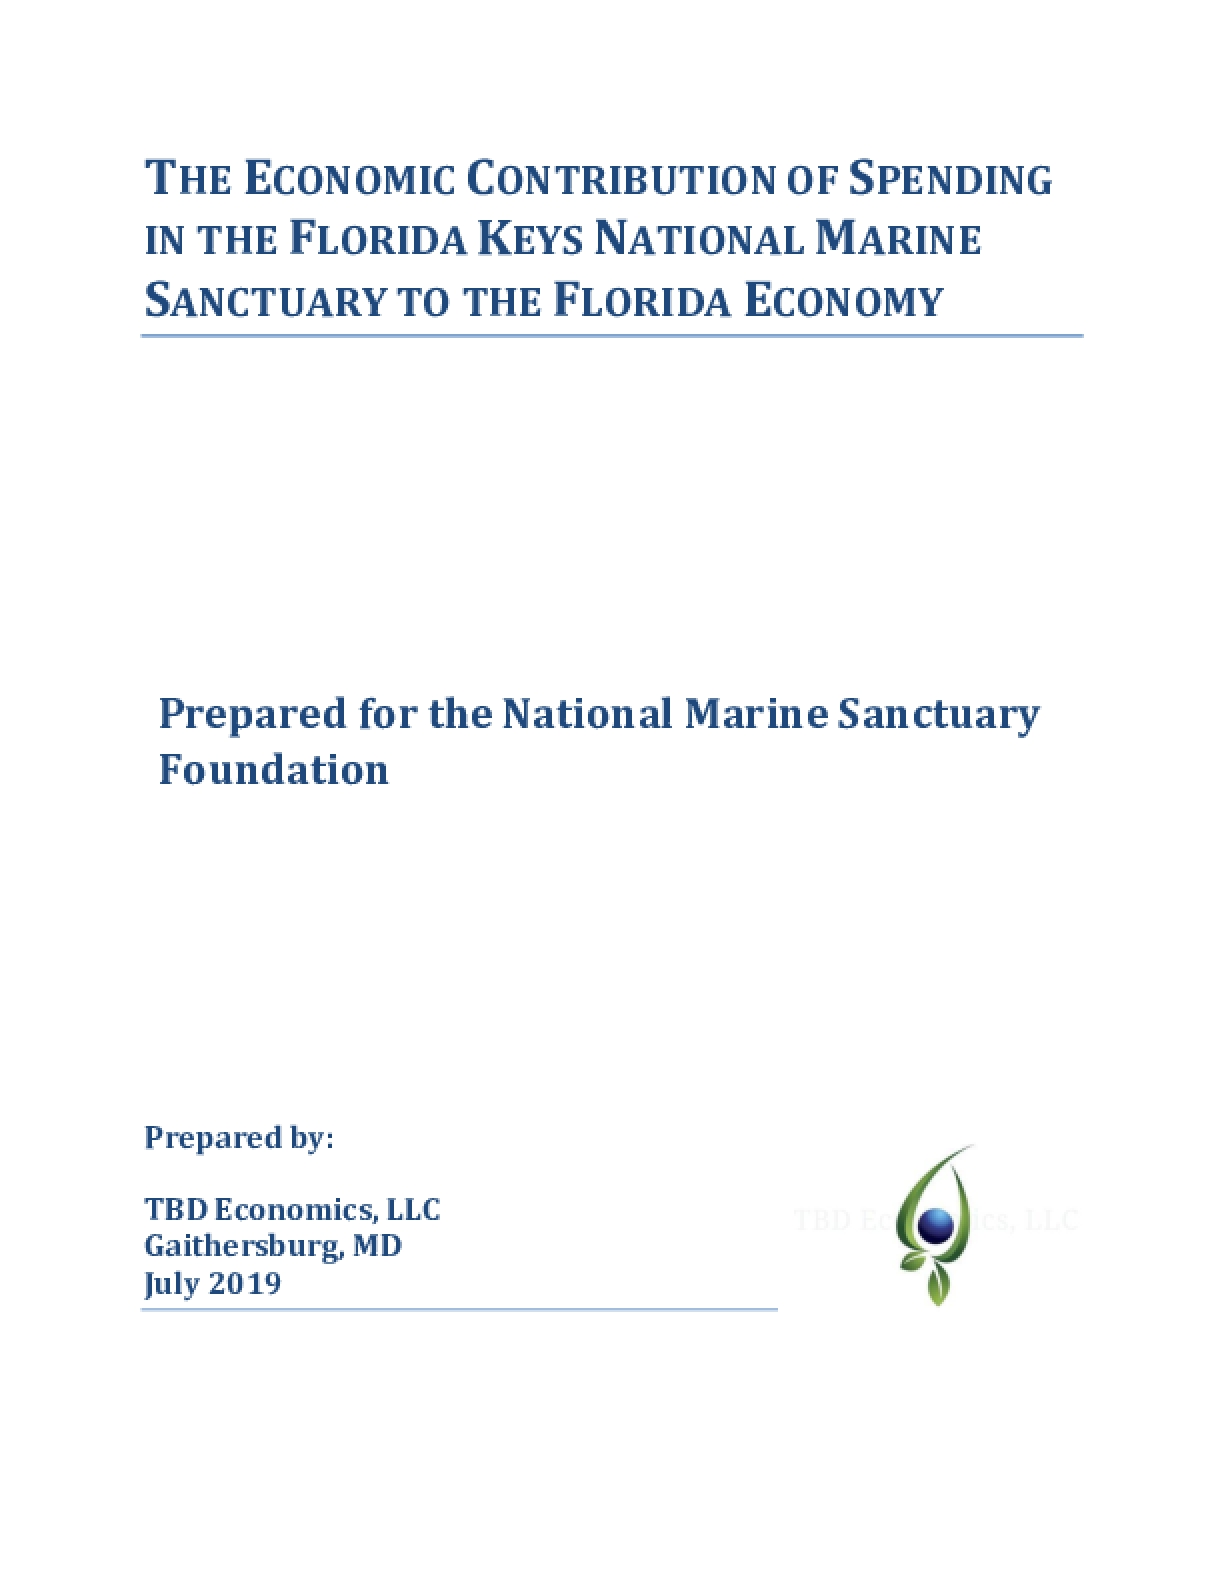 The Economic Contribution of Spending in the Florida Keys National Marine Sanctuary to the Florida Economy